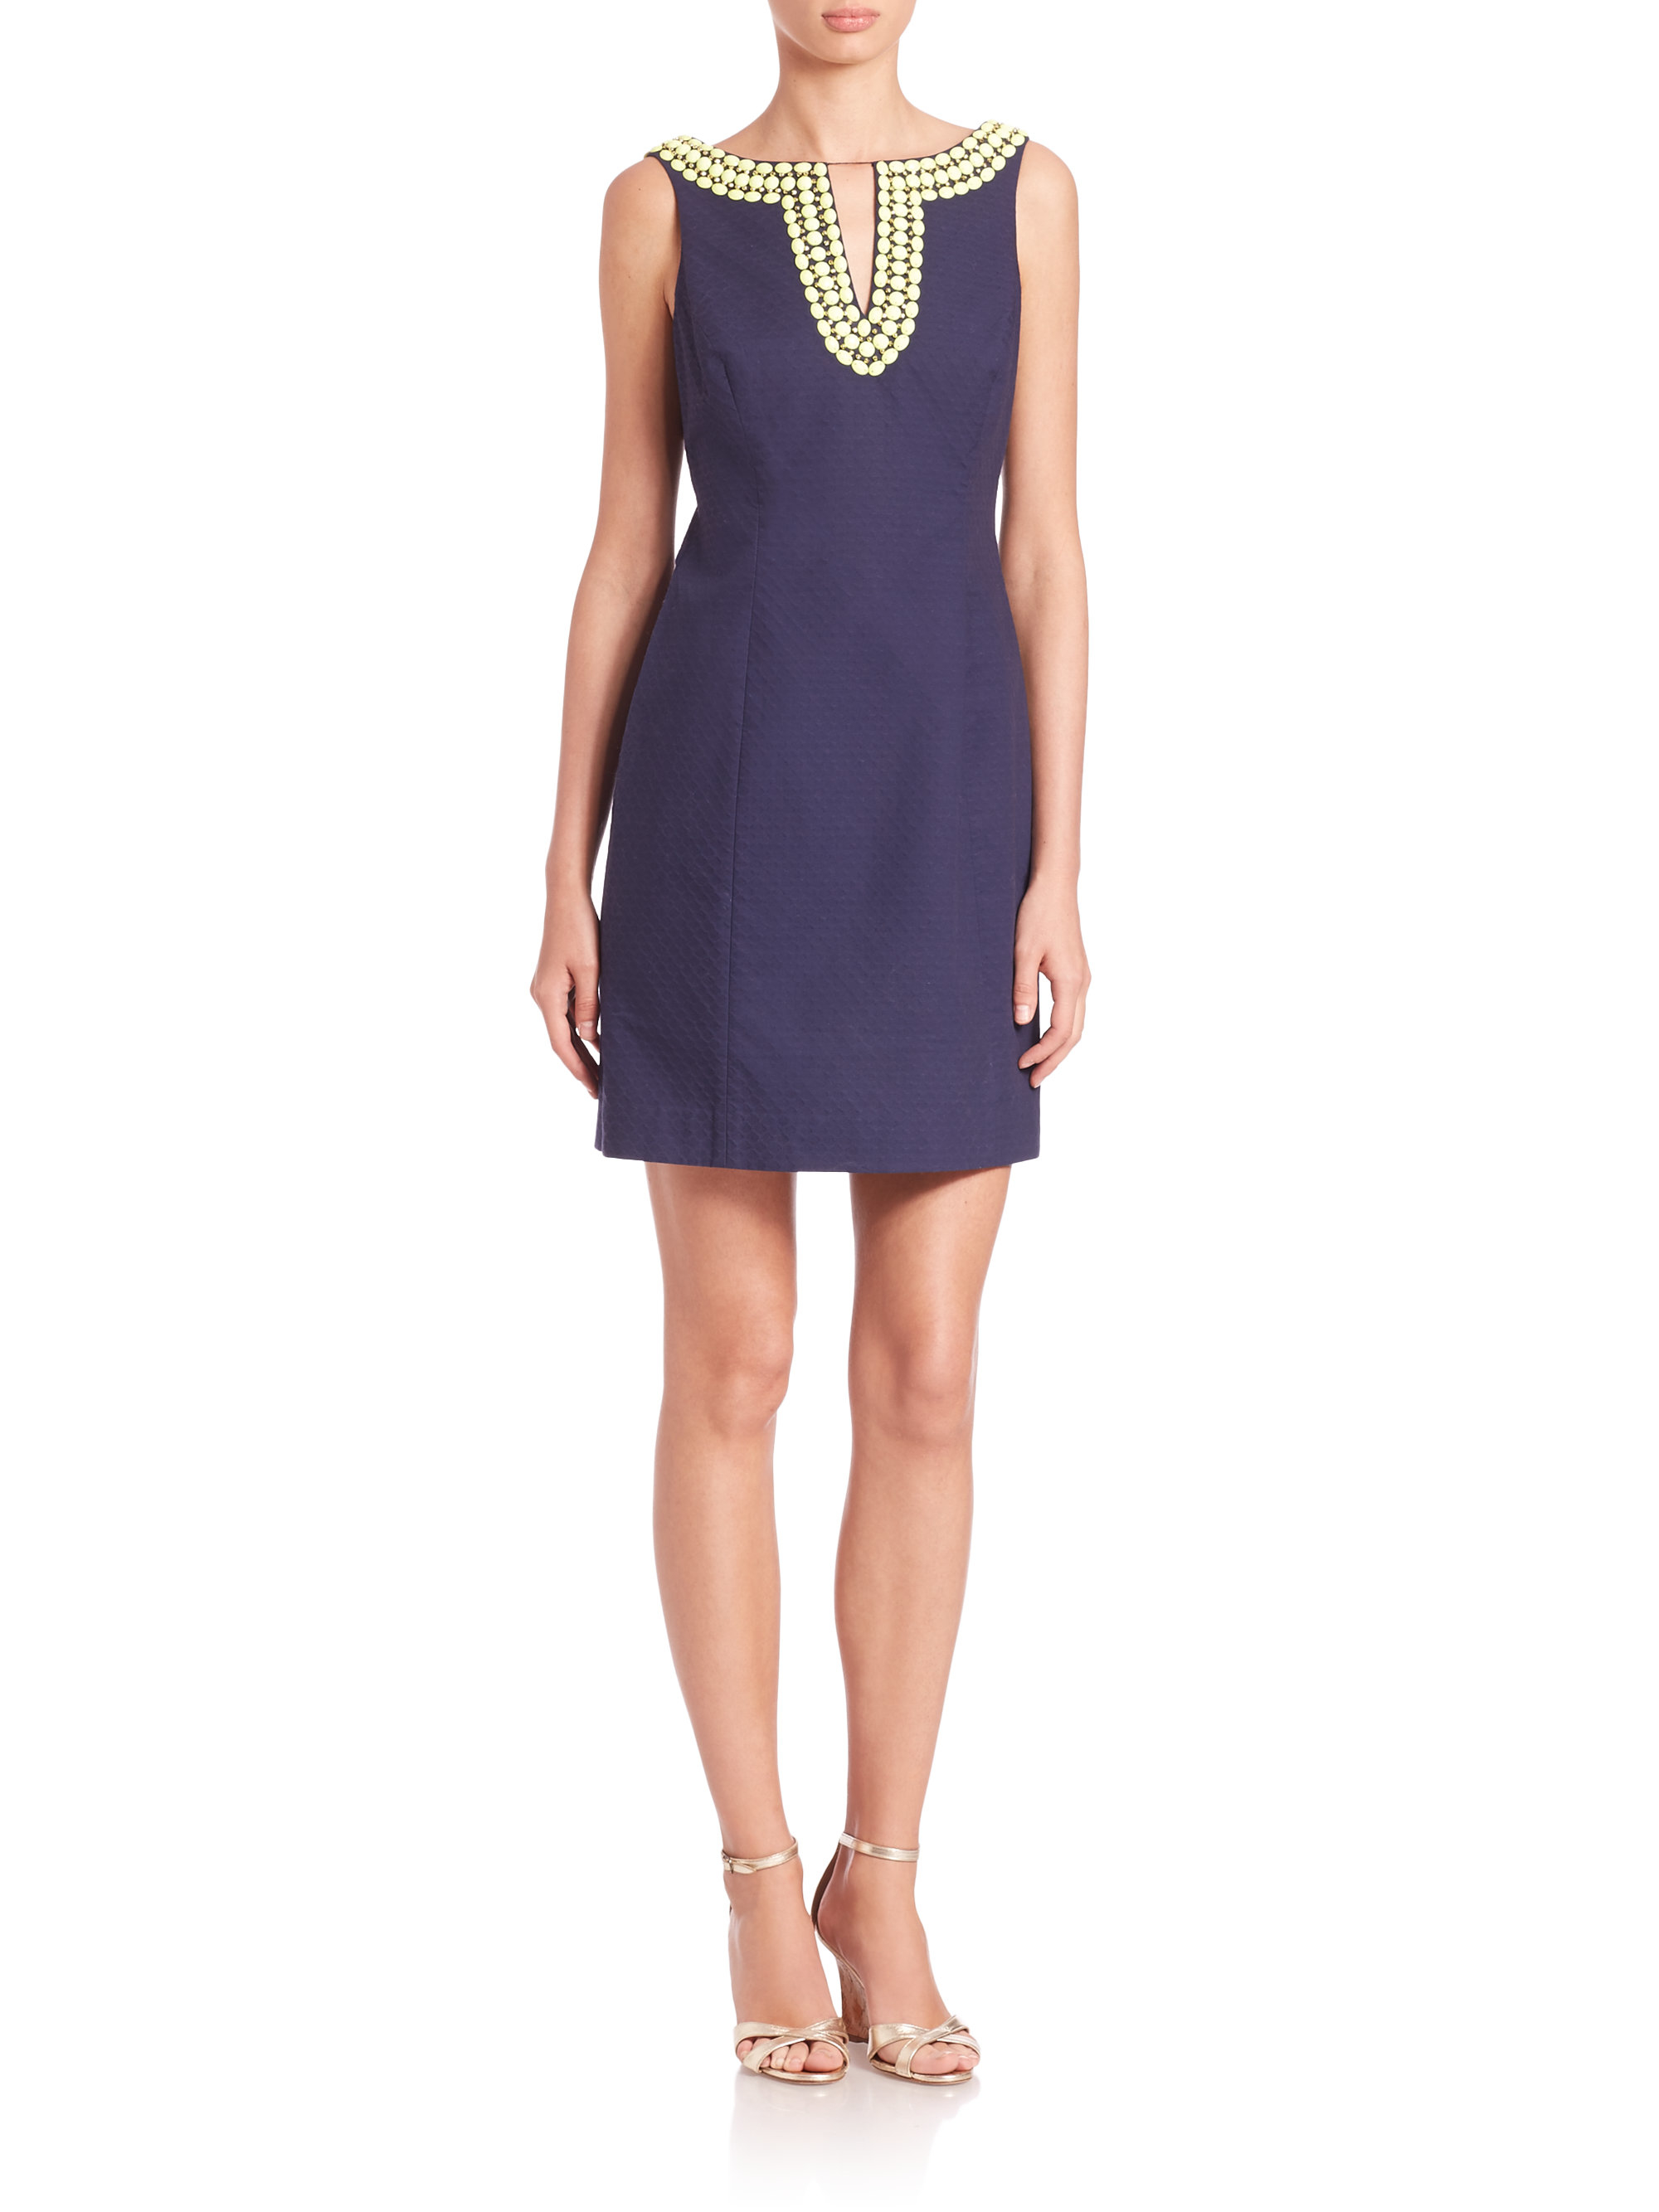 Lyst - Lilly Pulitzer Blaire Embellished Cotton Sheath in Blue